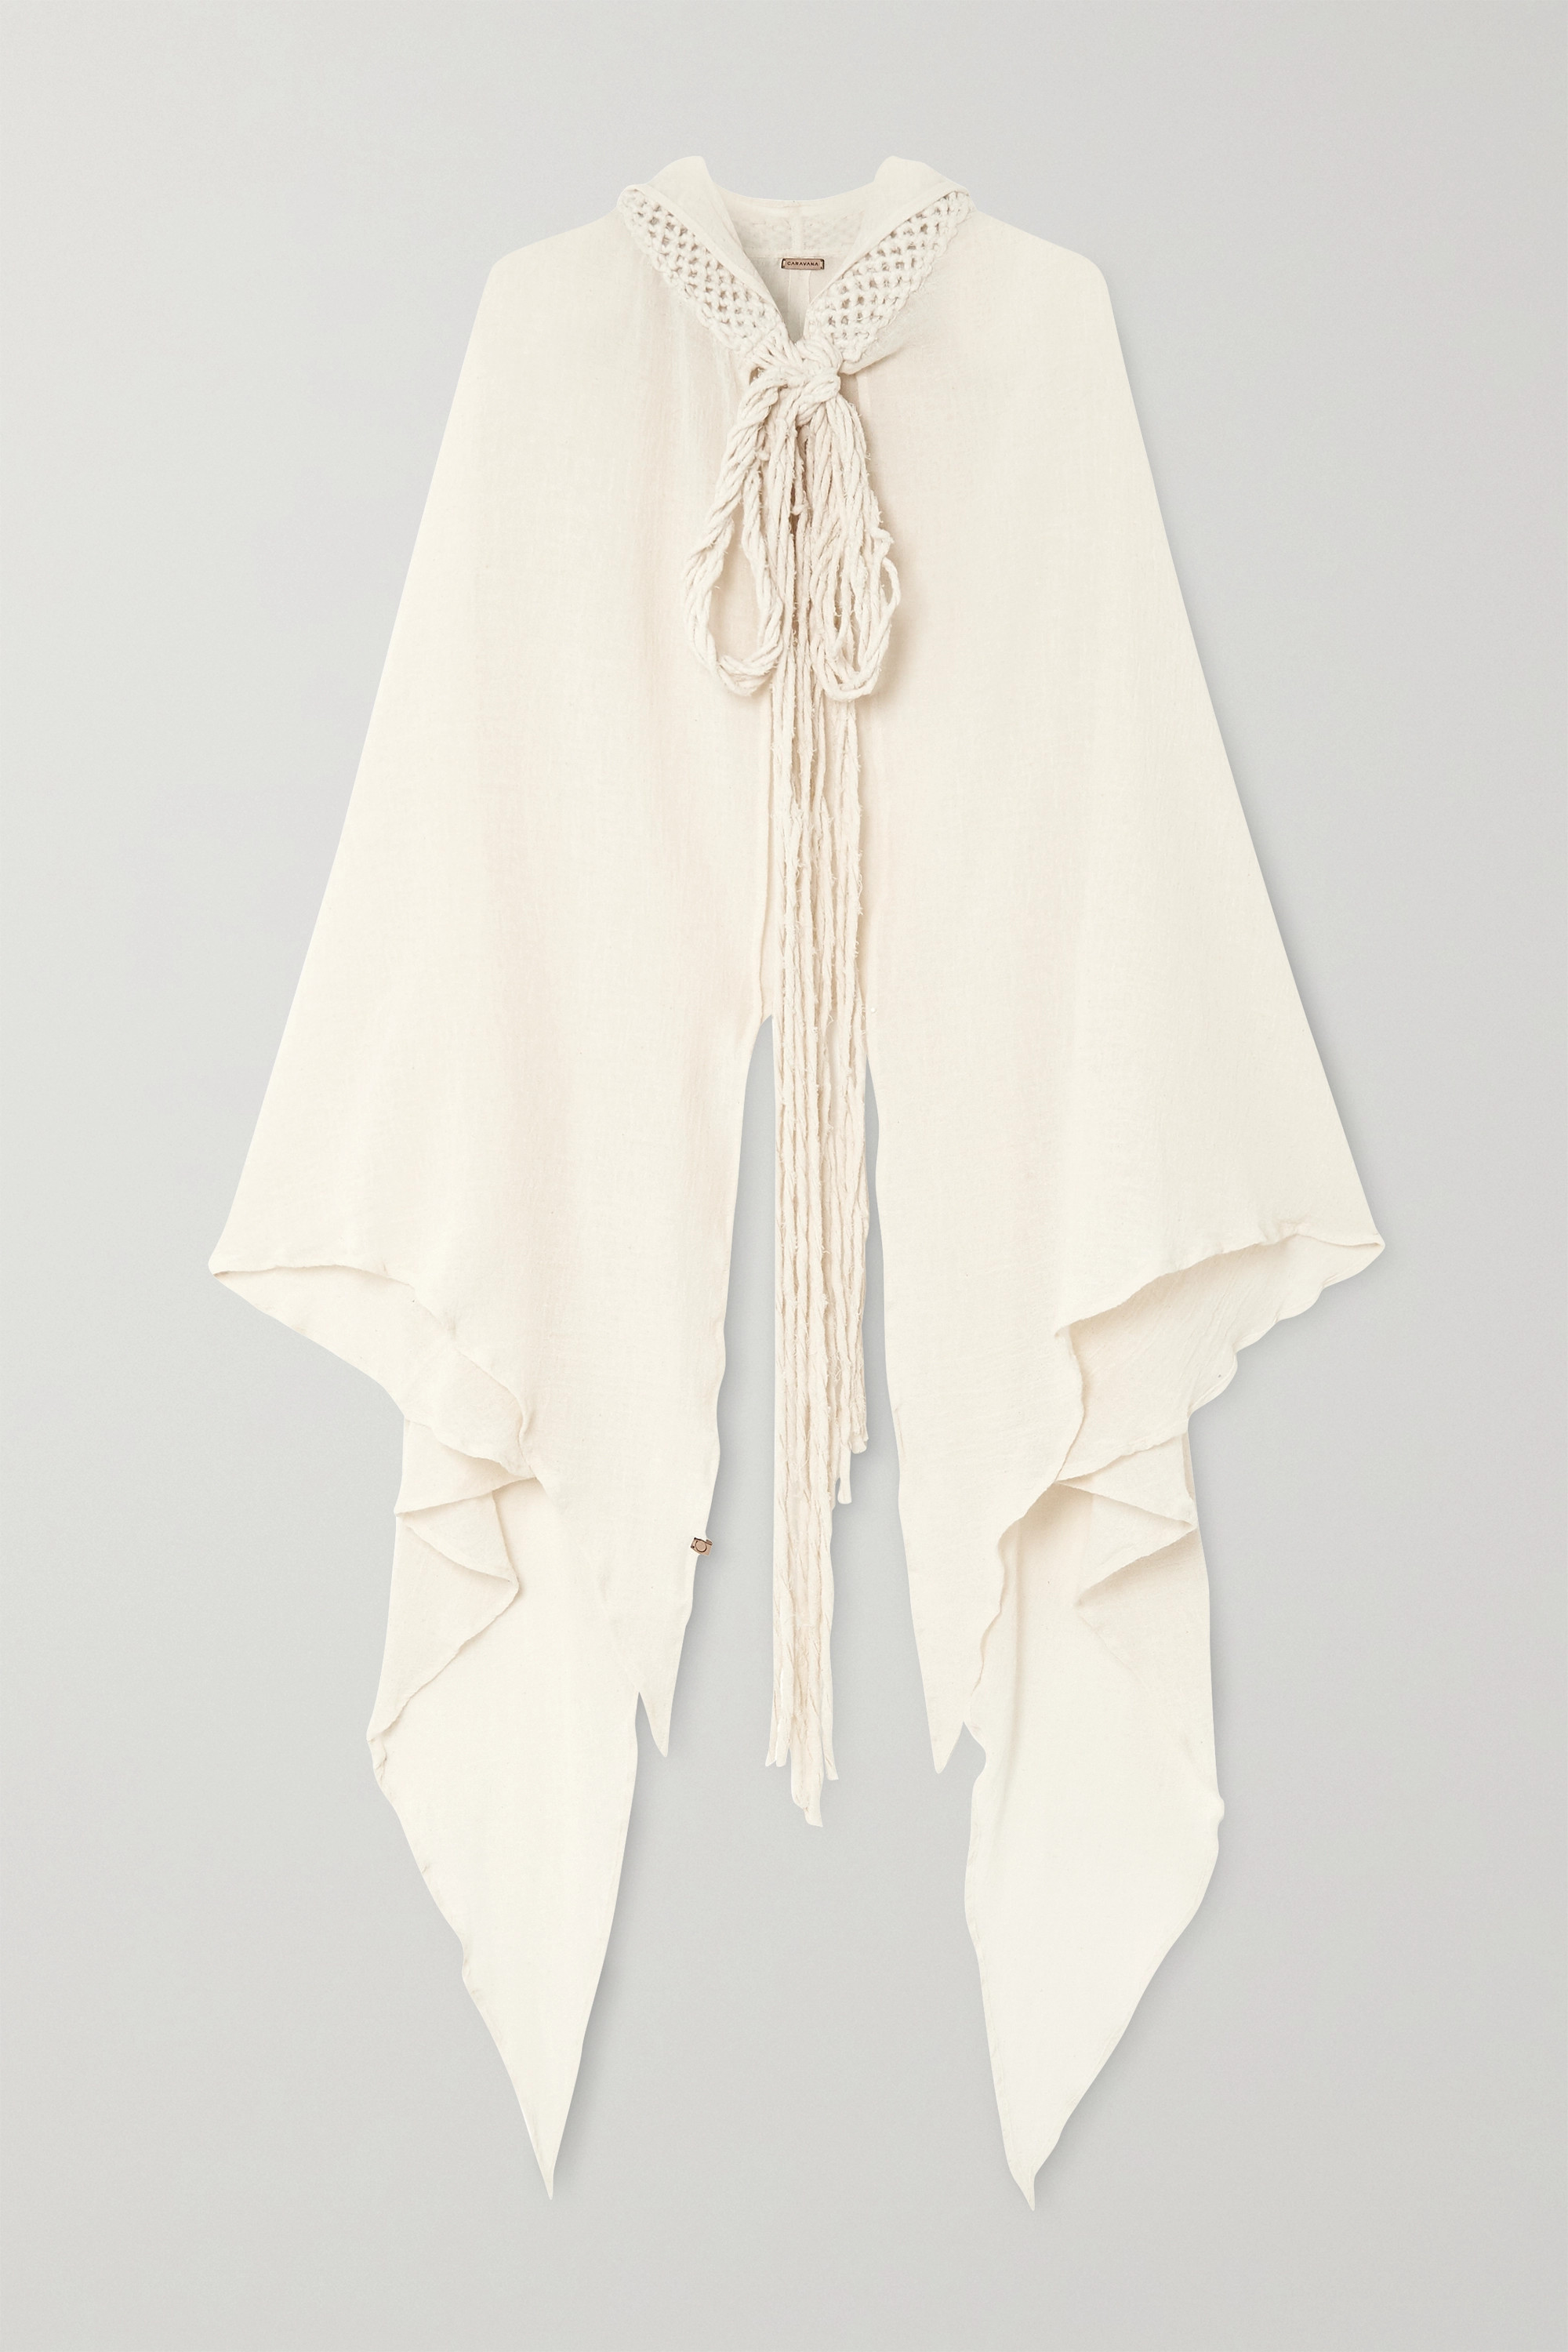 Caravana + NET SUSTAIN Kaanche tasseled cotton-gauze hooded cape